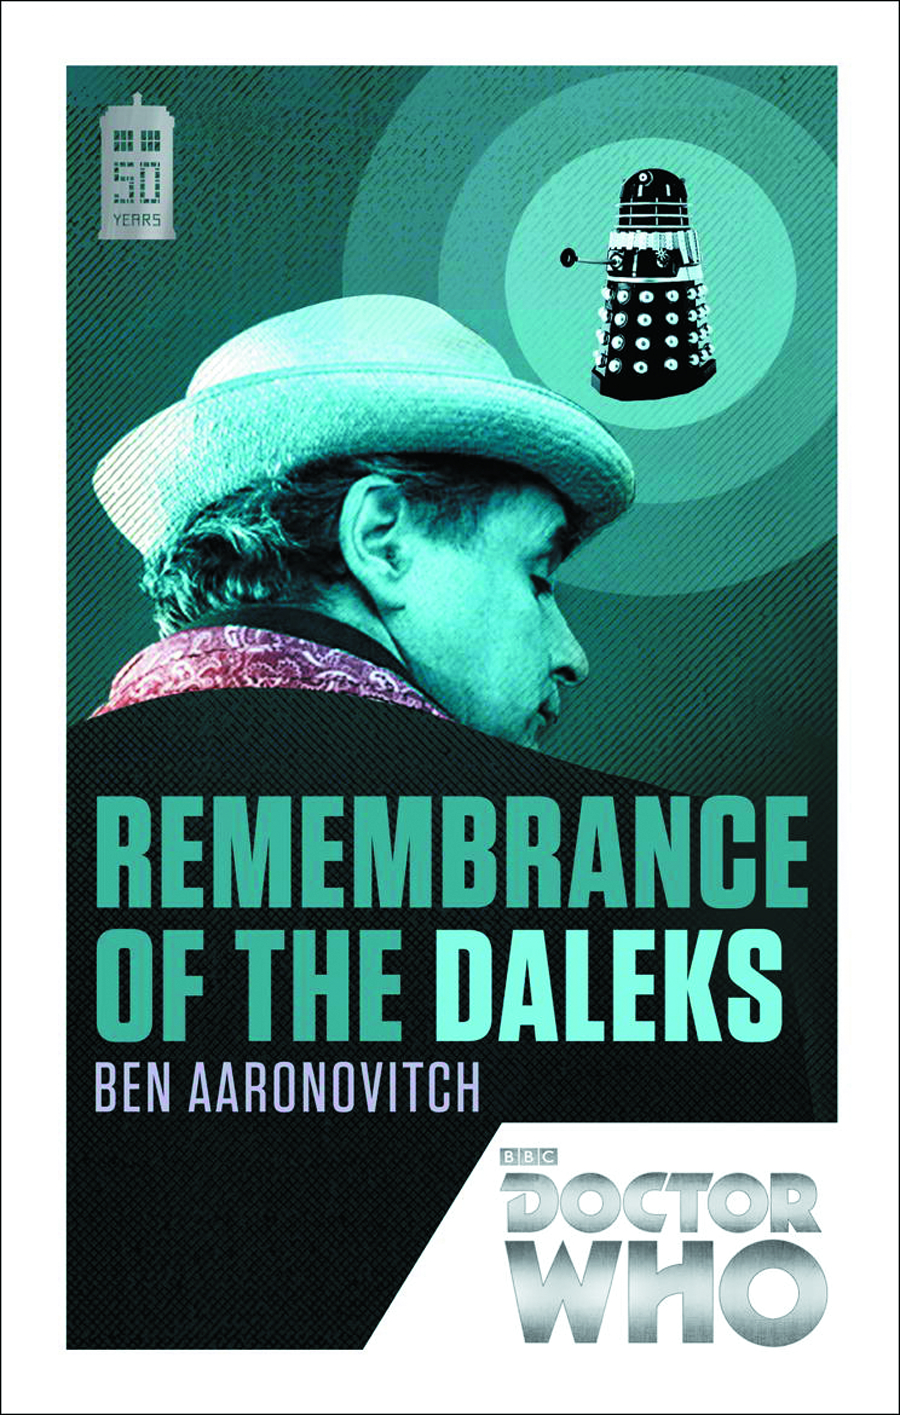 DOCTOR WHO 50TH ANNIV MMPB ED REMEMBRANCE OF DALEKS